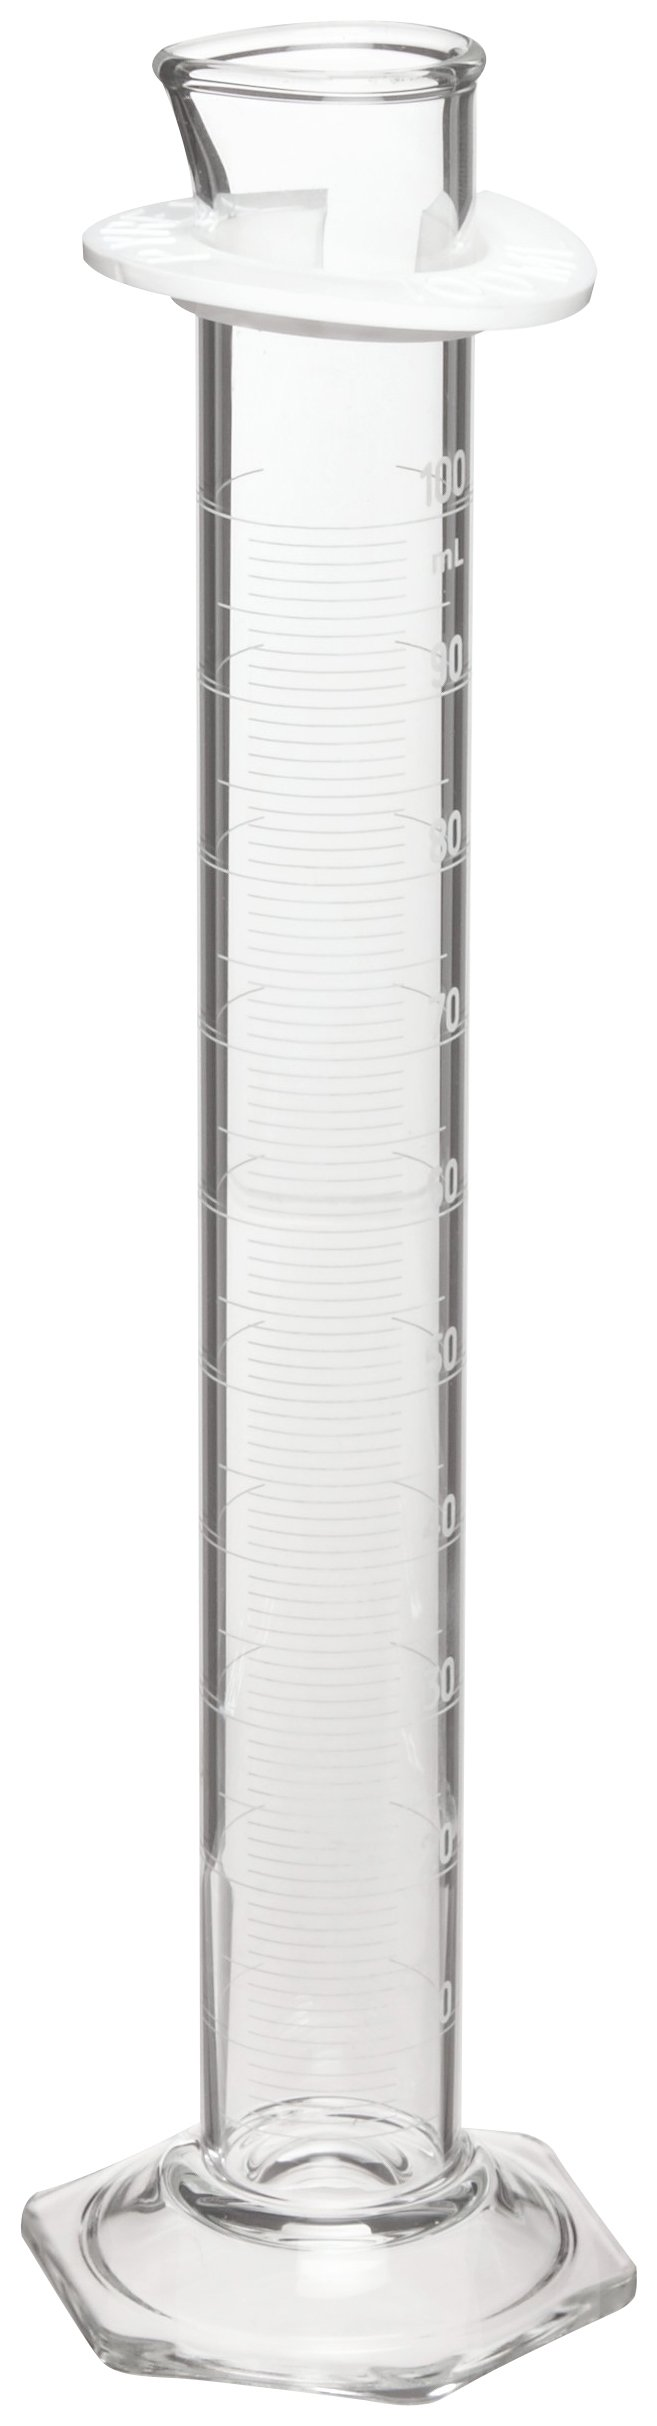 Corning Pyrex 3022-1L Glass 1000mL ''To Contain'' Graduated Single Metric Scale Calibrated Cylinder, with Pourout Top